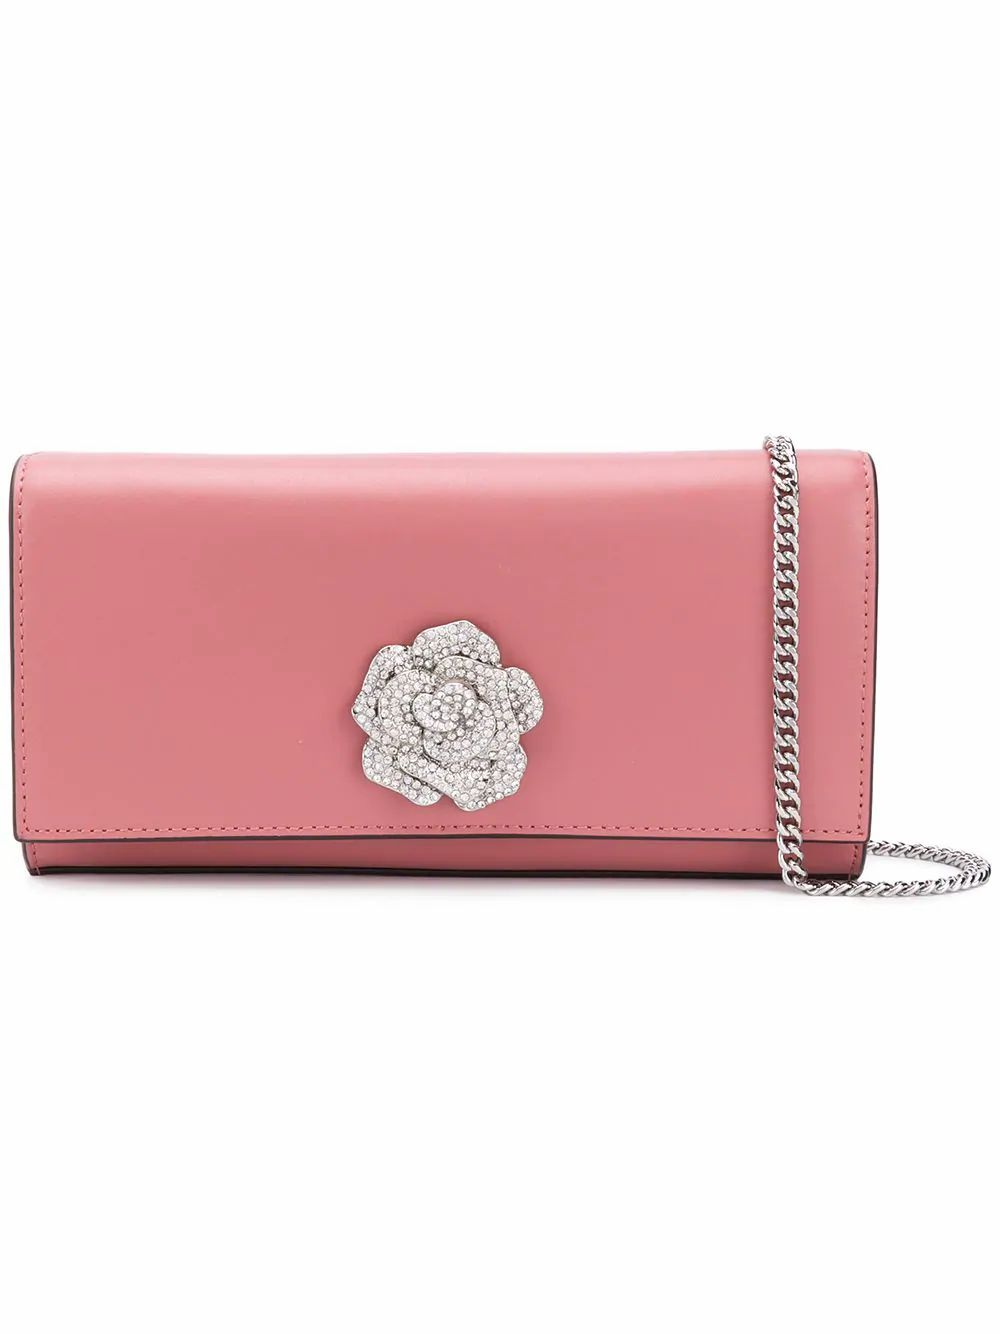 MICHAEL KORS flower pochette clutch